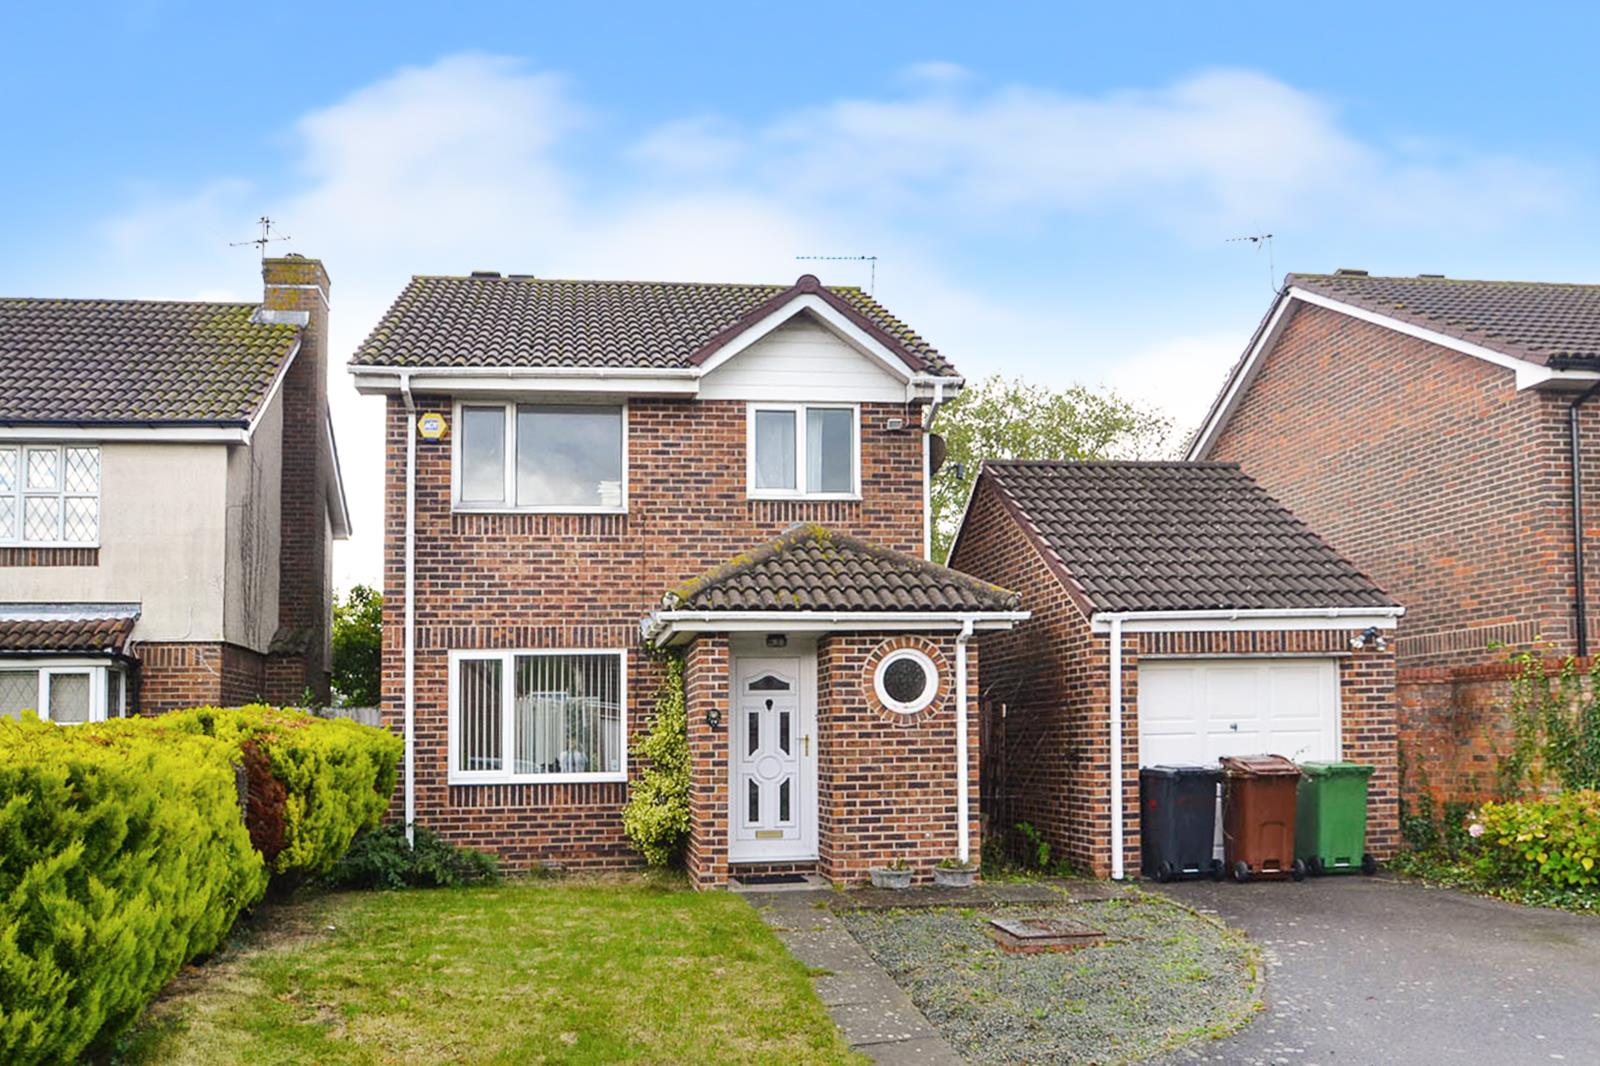 3 Bedrooms Detached House for sale in Hambleton Close, Eastbourne